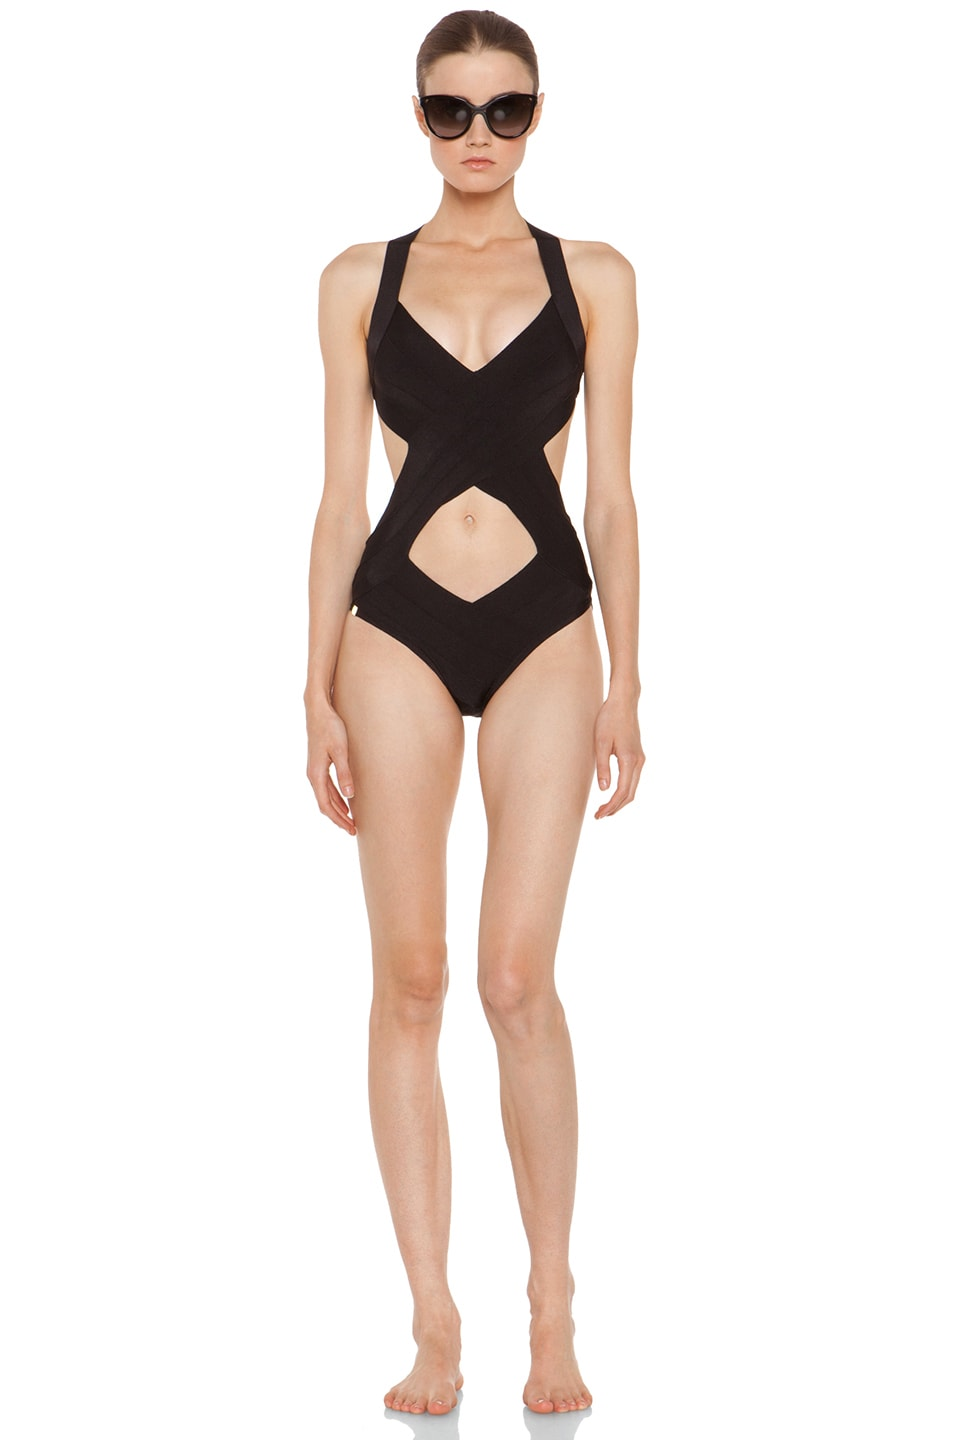 e9cd7ece4b1a2 Image 5 of Herve Leger Criss Cross One Piece Swimsuit in Black